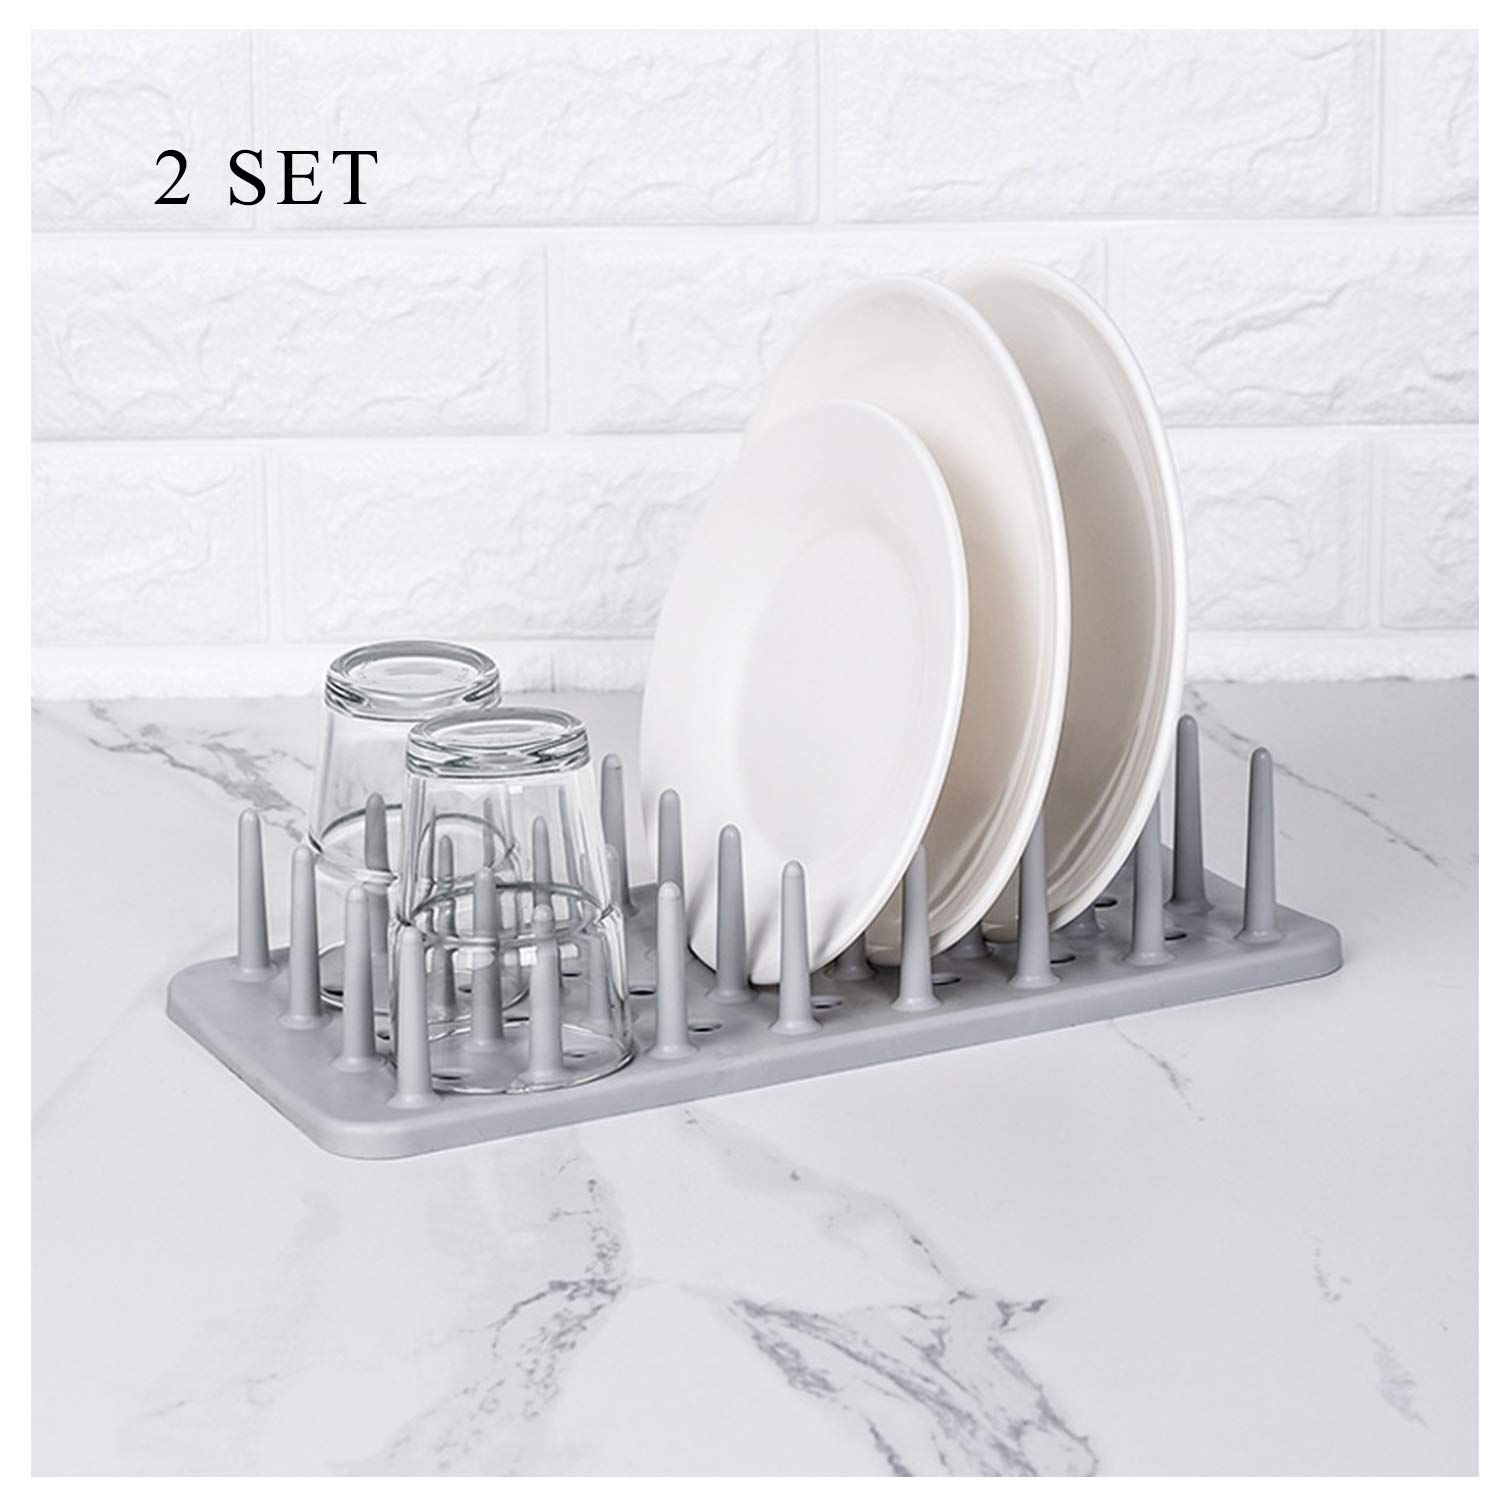 CASAGOOD Draining Dish Rack Bottle Drying Peg Rack Kitchen Organizer for Plate and Mug 2 Pack (Grey)